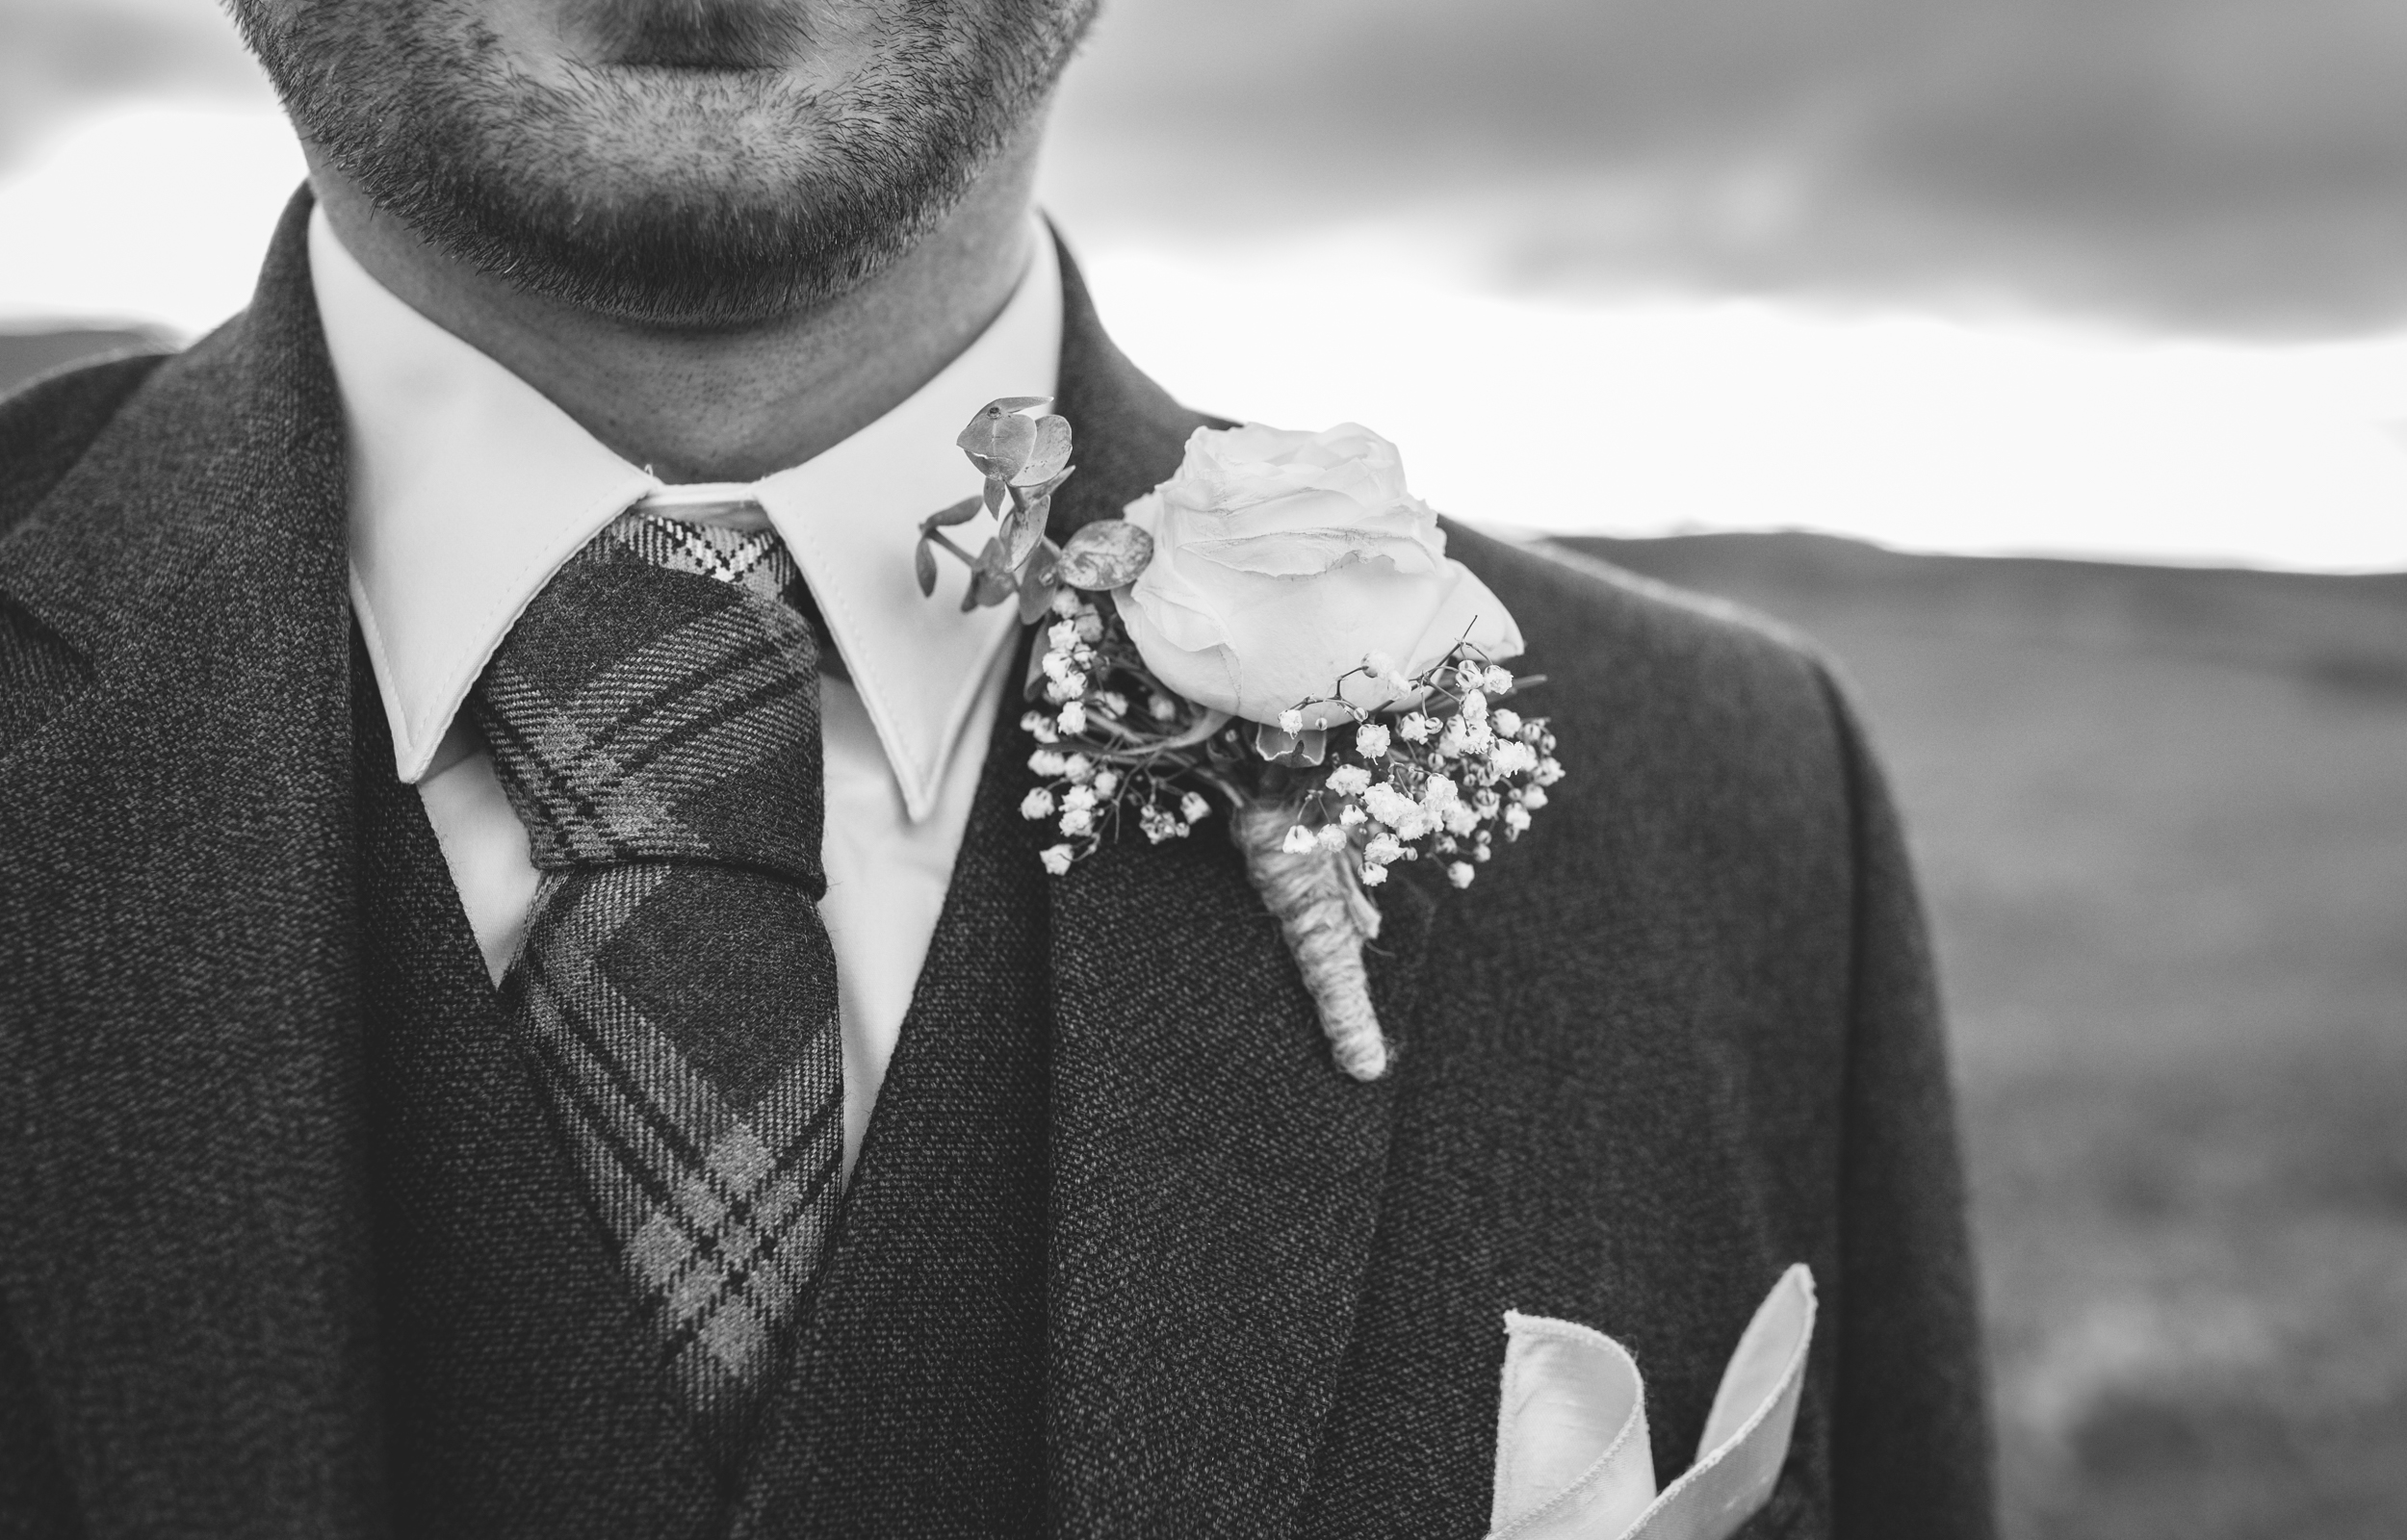 weddingphotographyaberdeenshire (40 of 51).jpg